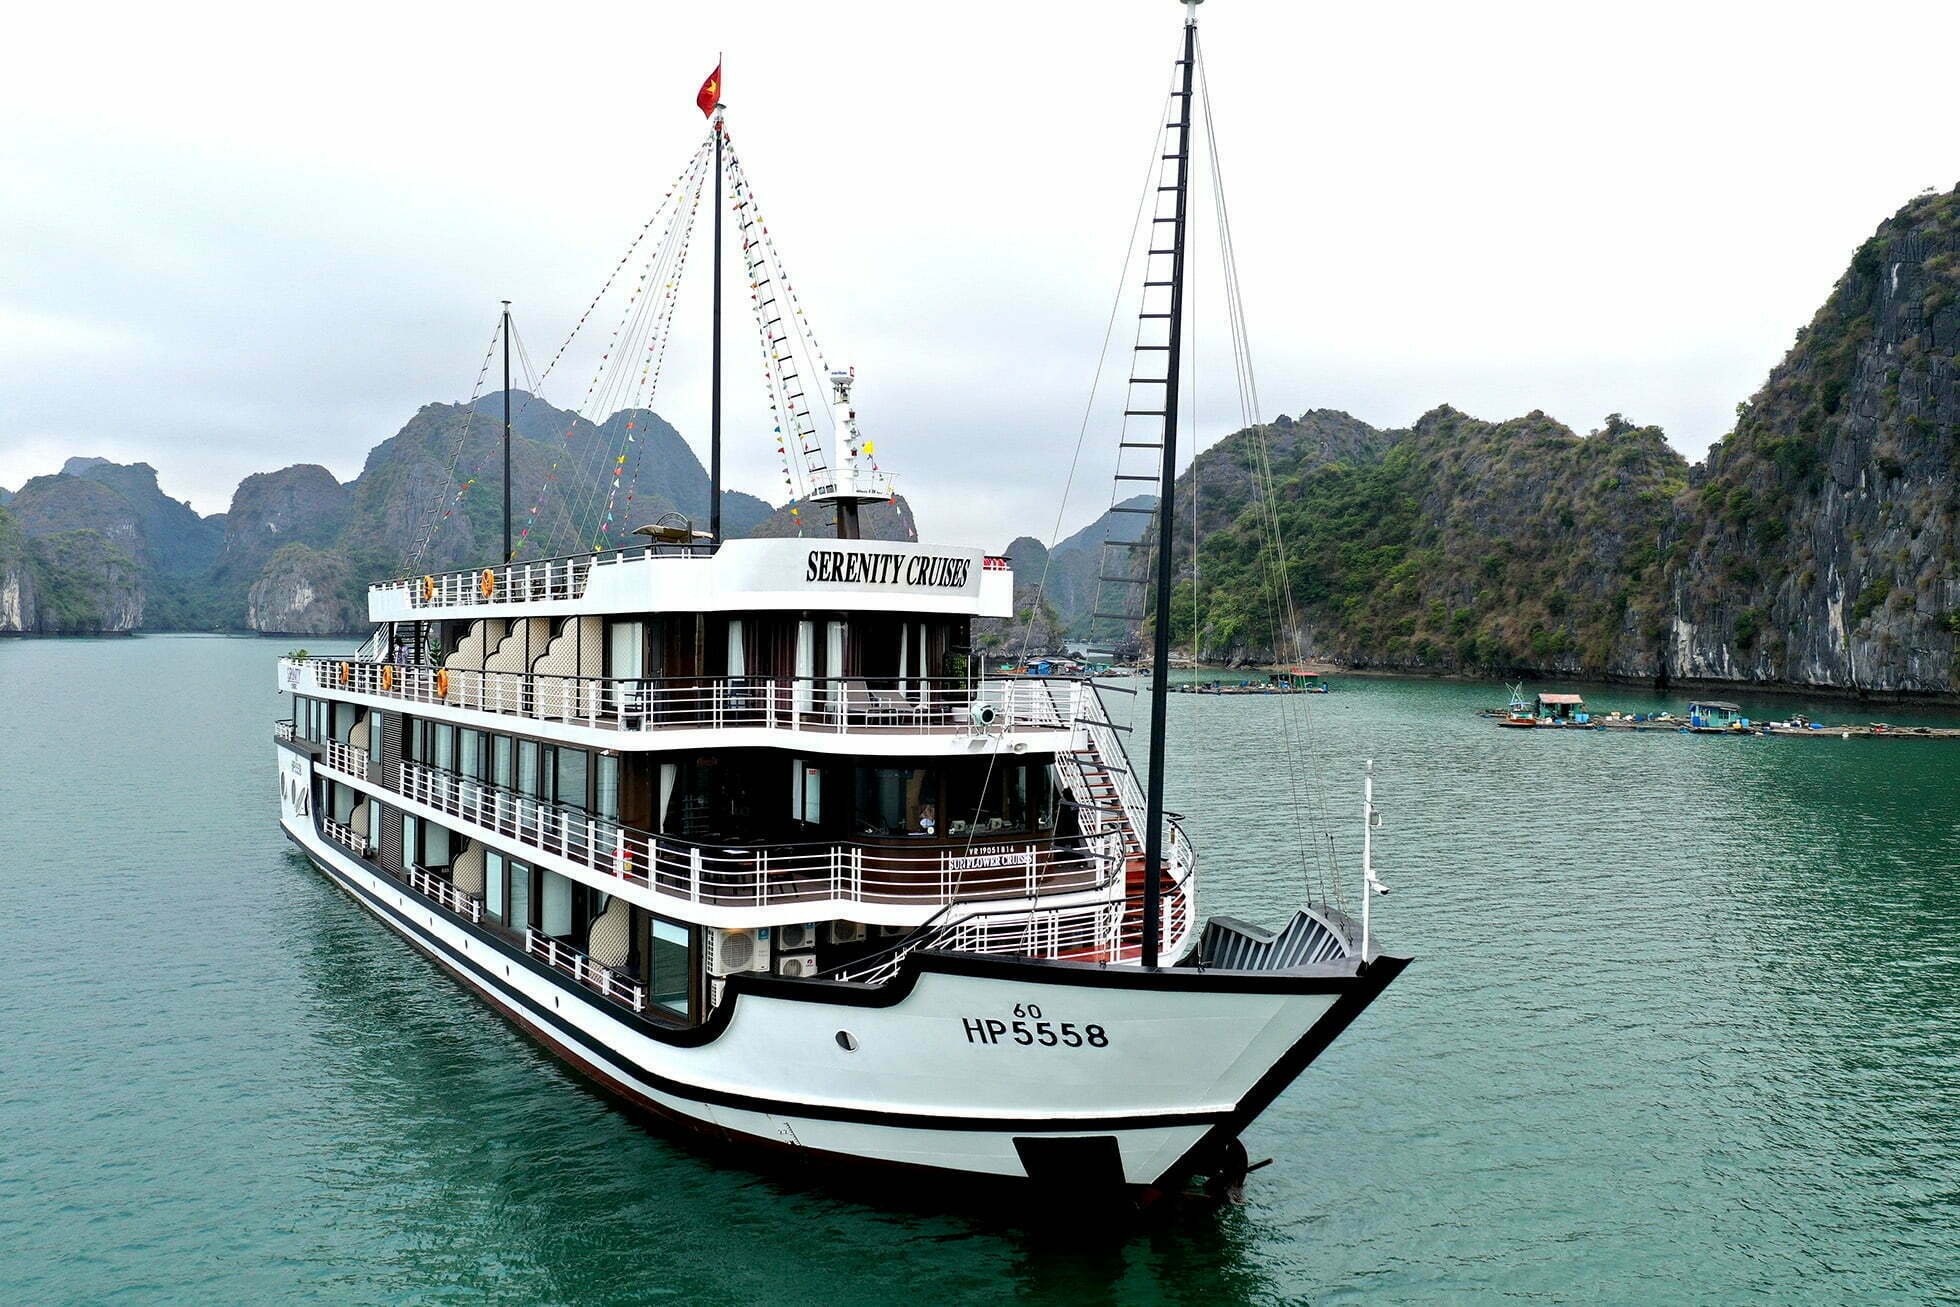 Halong Bay 3 days 2 nights | Lan Ha Bay 3 days 2 nights Serenity Cruises